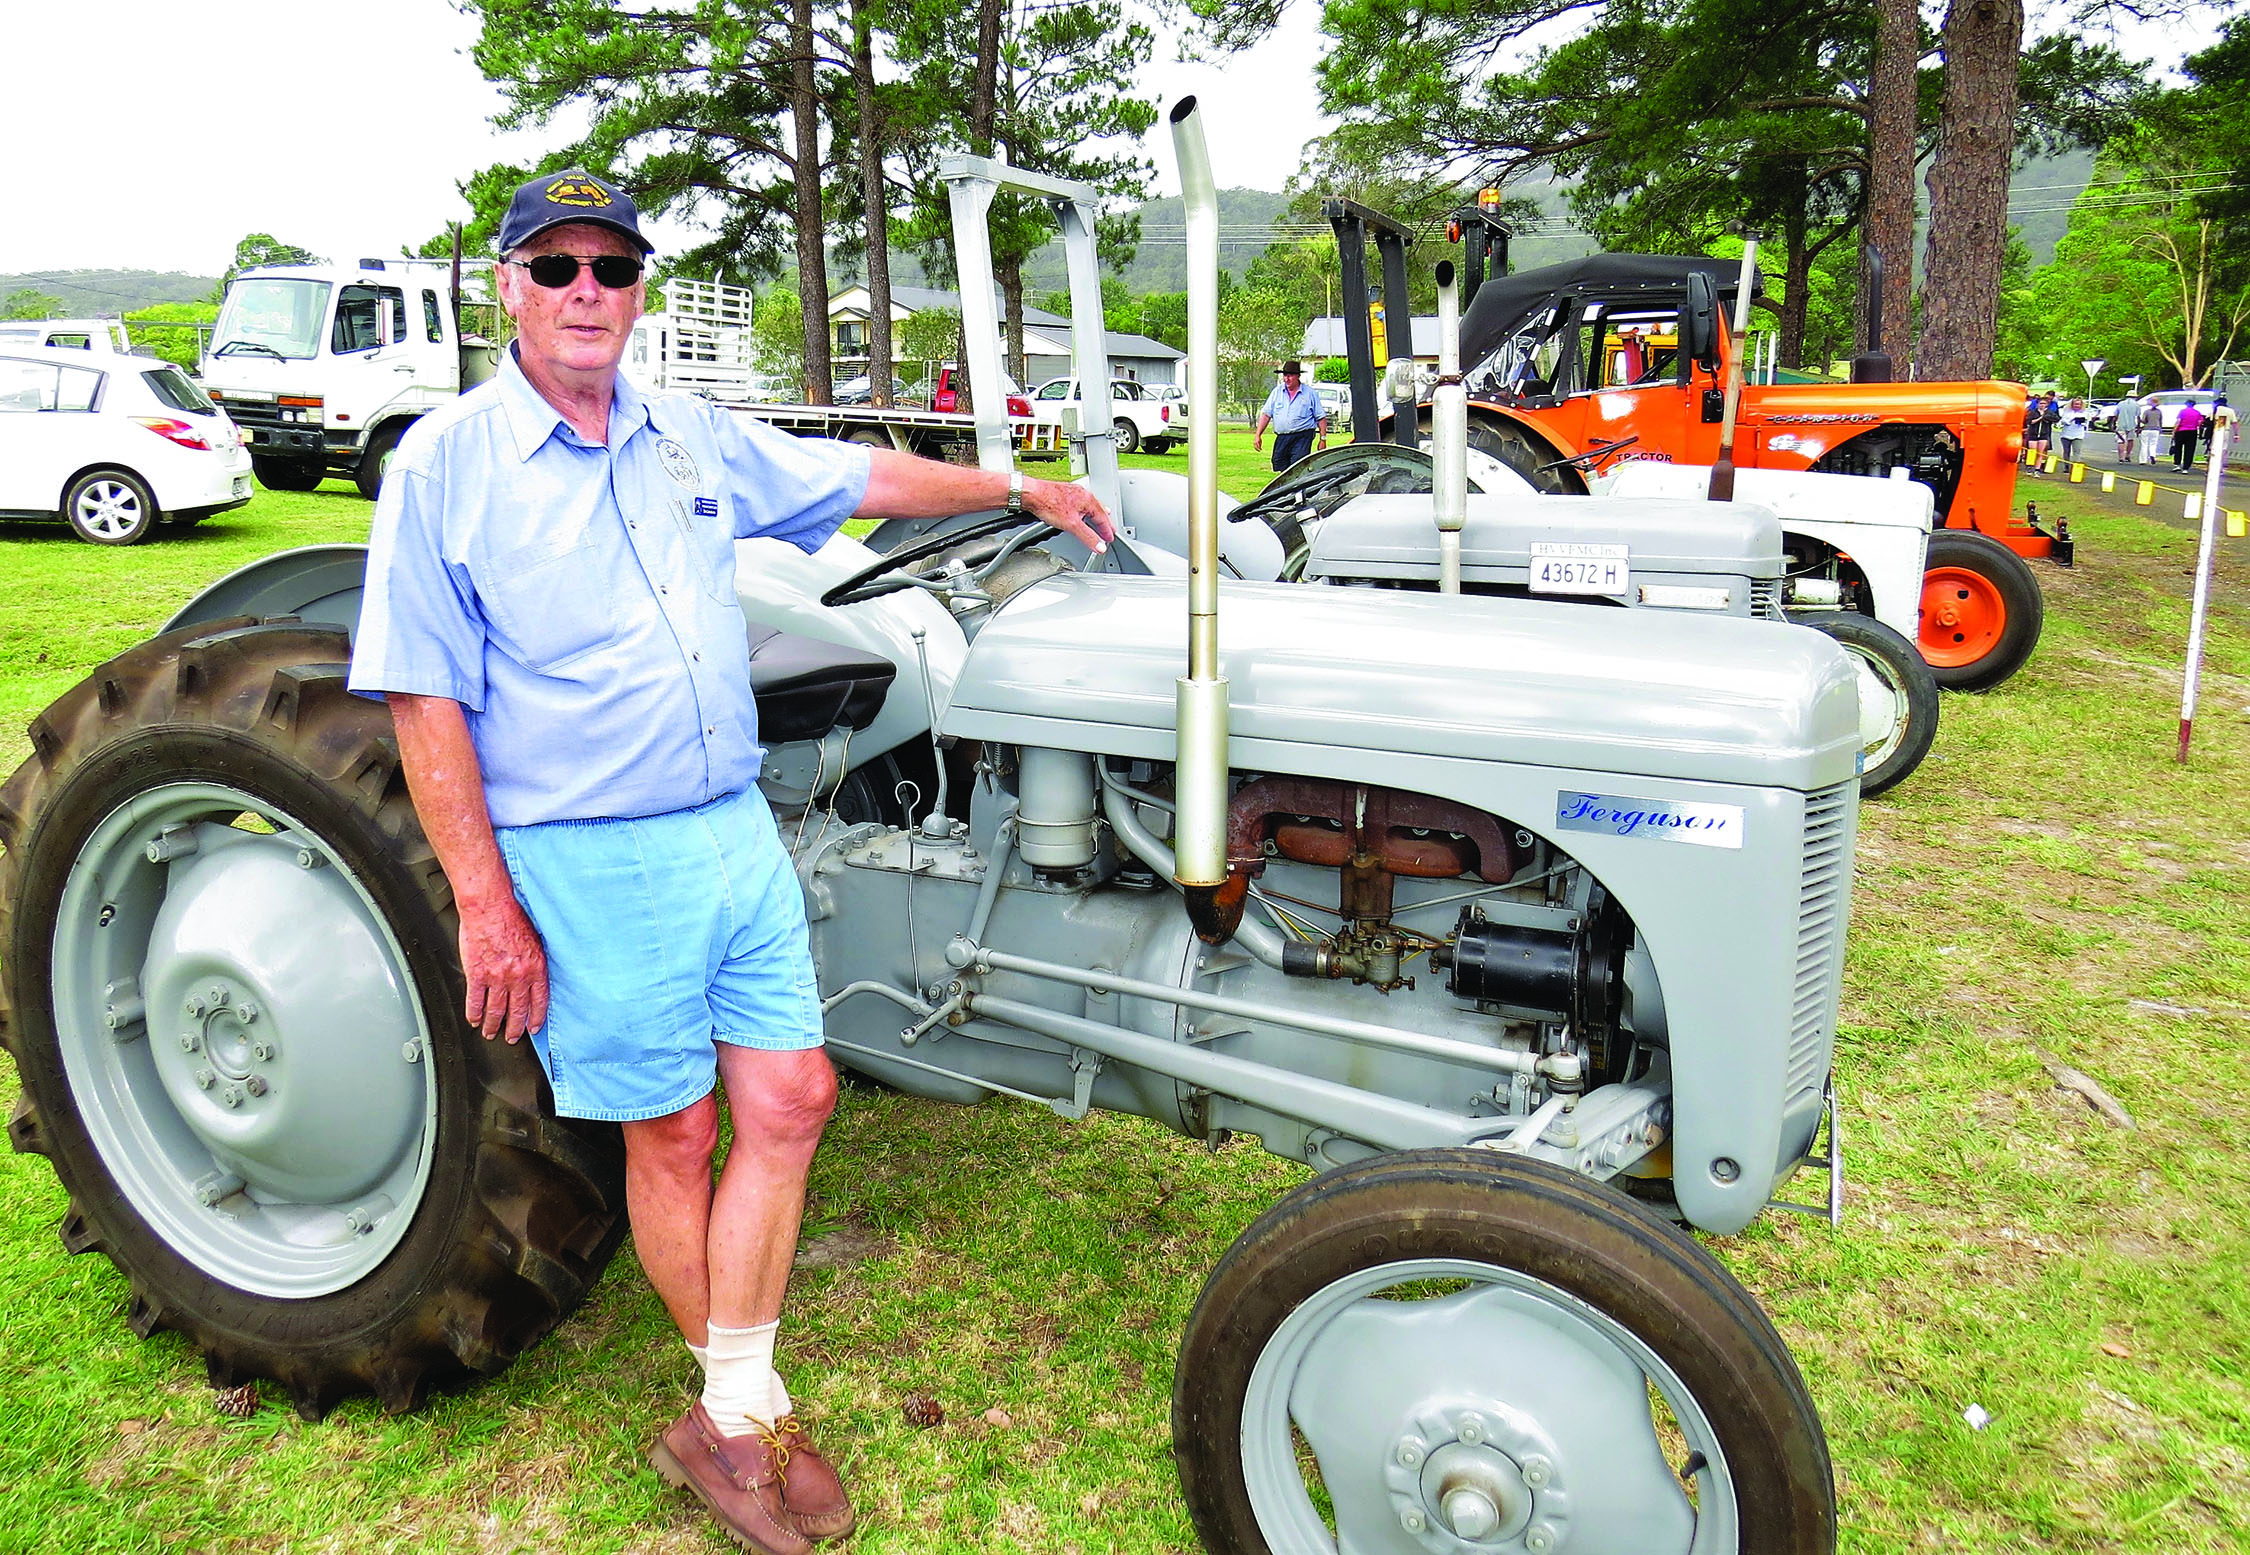 MACHINERY: Don Lansdowne with the tractor display